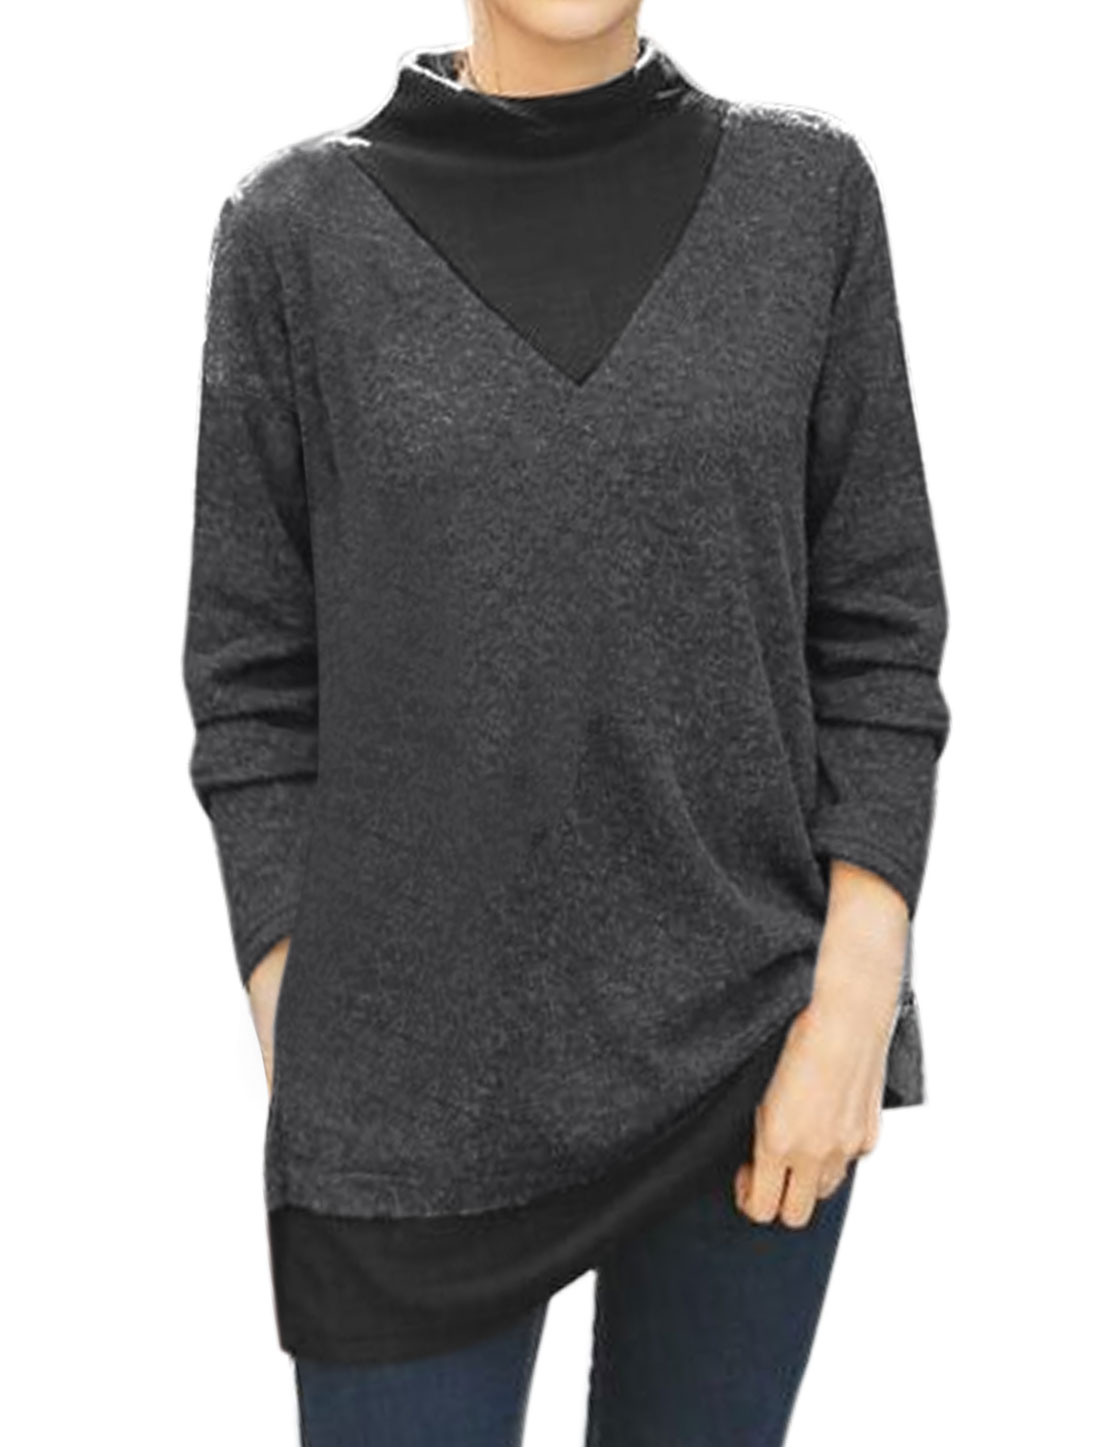 Women Mock Neck Color Block Knit Tunic Top Gray XS